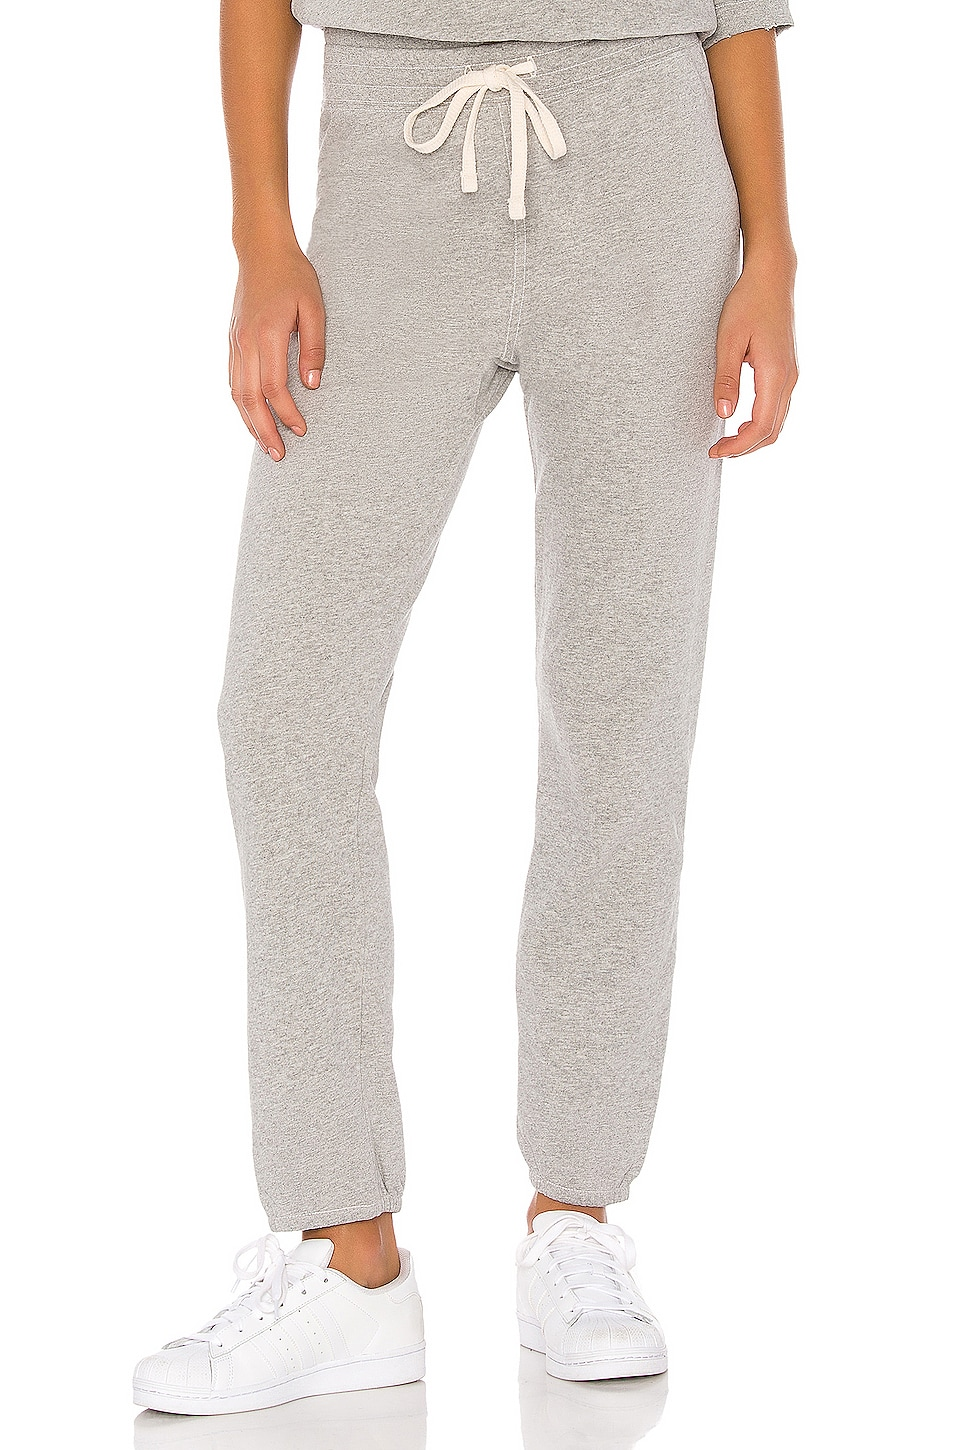 AMO Cropped Sweatpant in Heather Grey